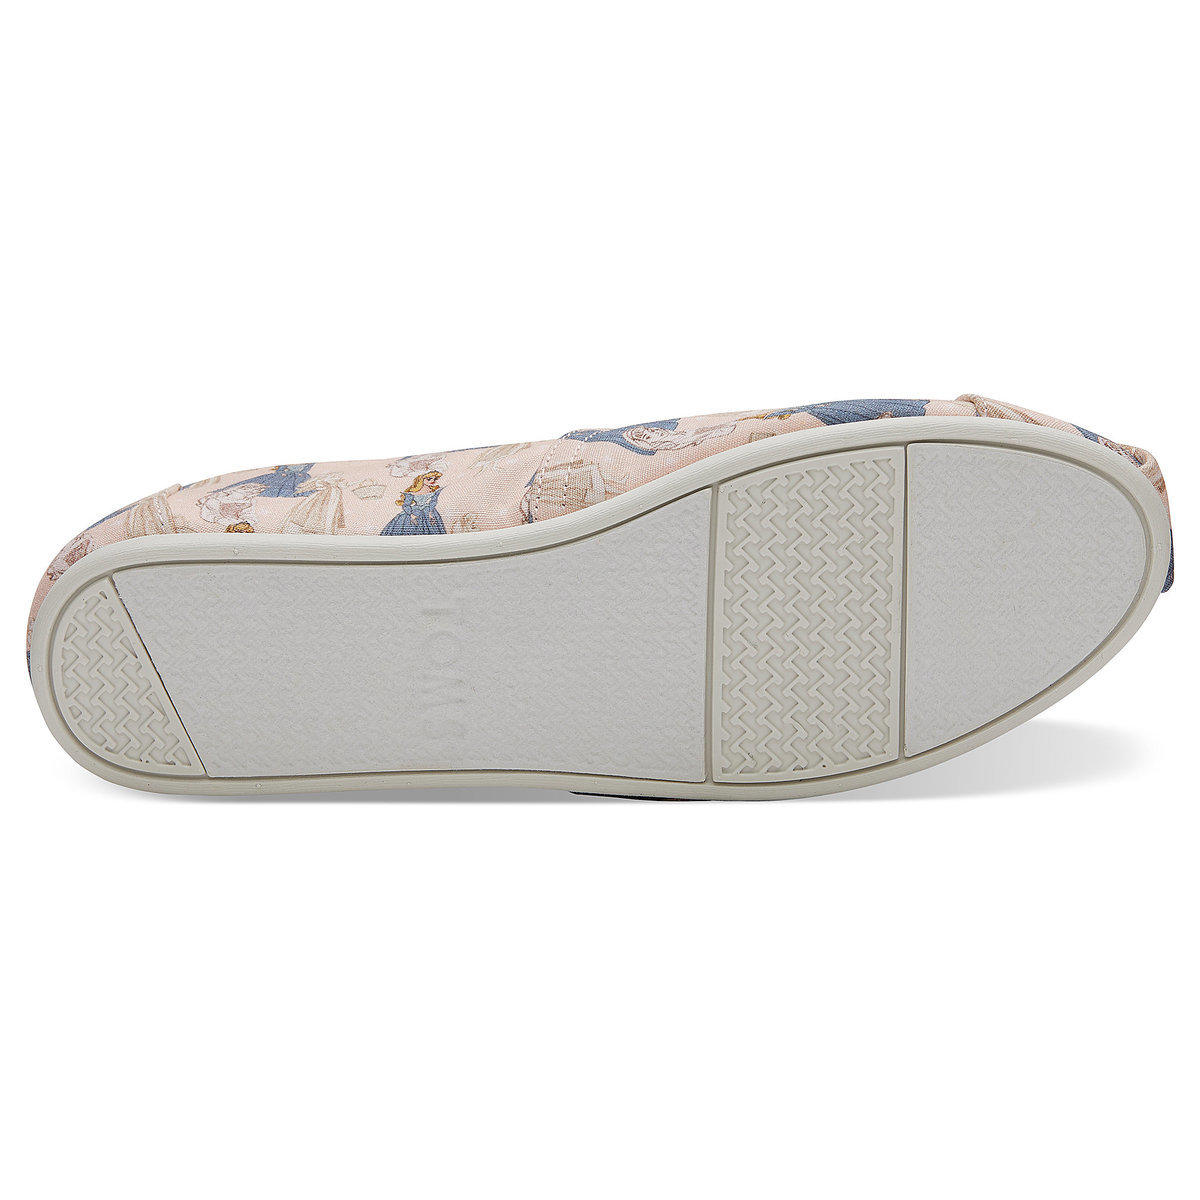 7fd6cb76030 Sleeping Beauty Shoes for Women by TOMS